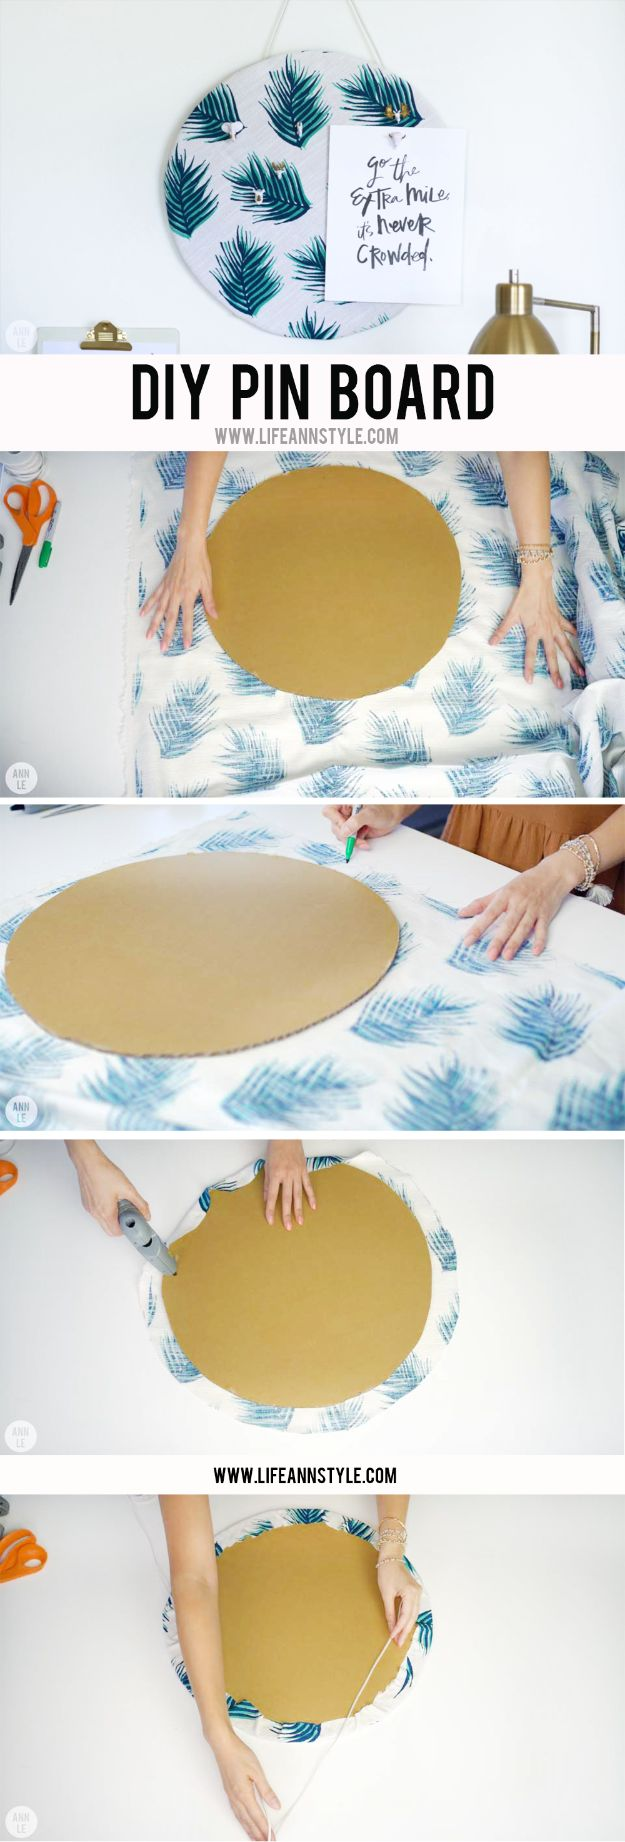 DIY Ideas With Cardboard - DIY Pin Board - How To Make Room Decor Crafts for Kids - Easy and Crafty Storage Ideas For Room - Toilet Paper Roll Projects Tutorials - Fun Furniture Ideas with Cardboard - Cheap, Quick and Easy Wall Decorations #diyideas #cardboardcrafts #crafts